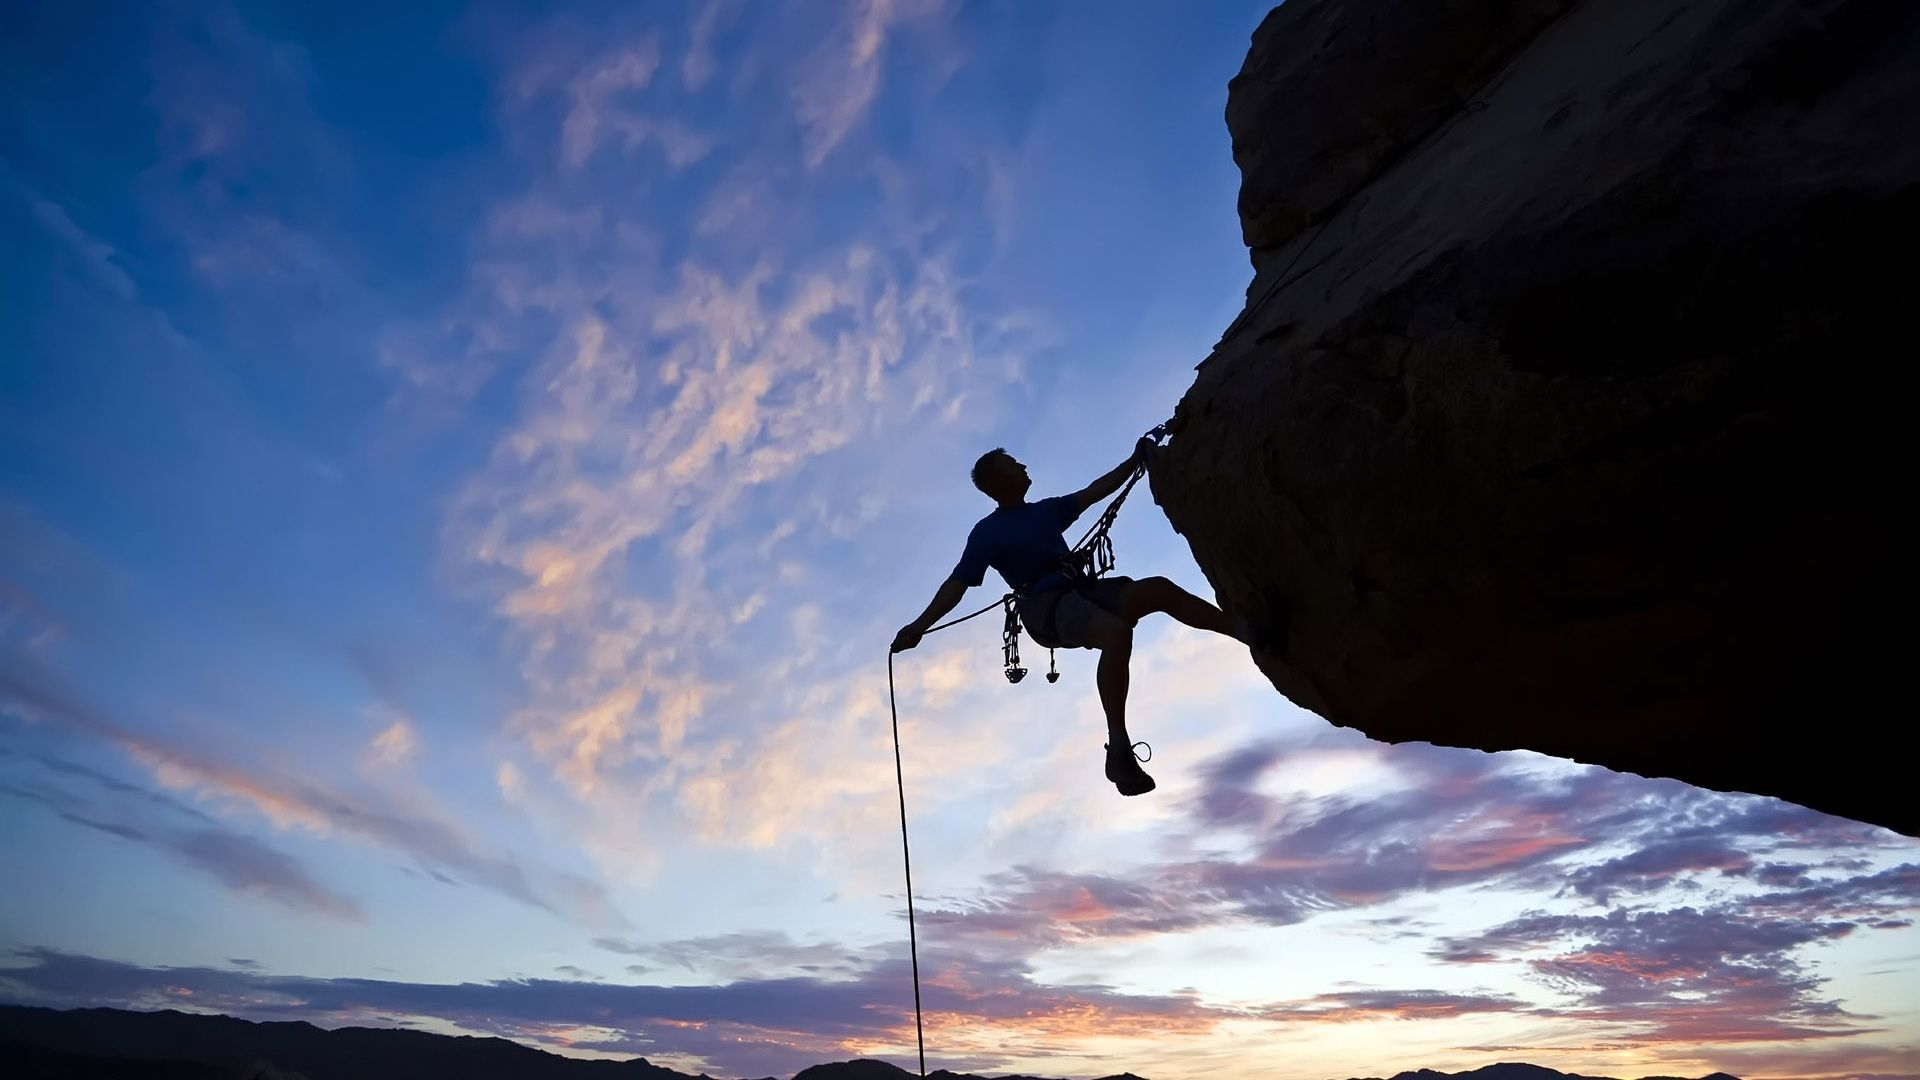 Systems Are Better Than Goals Good Article Rock Climbing